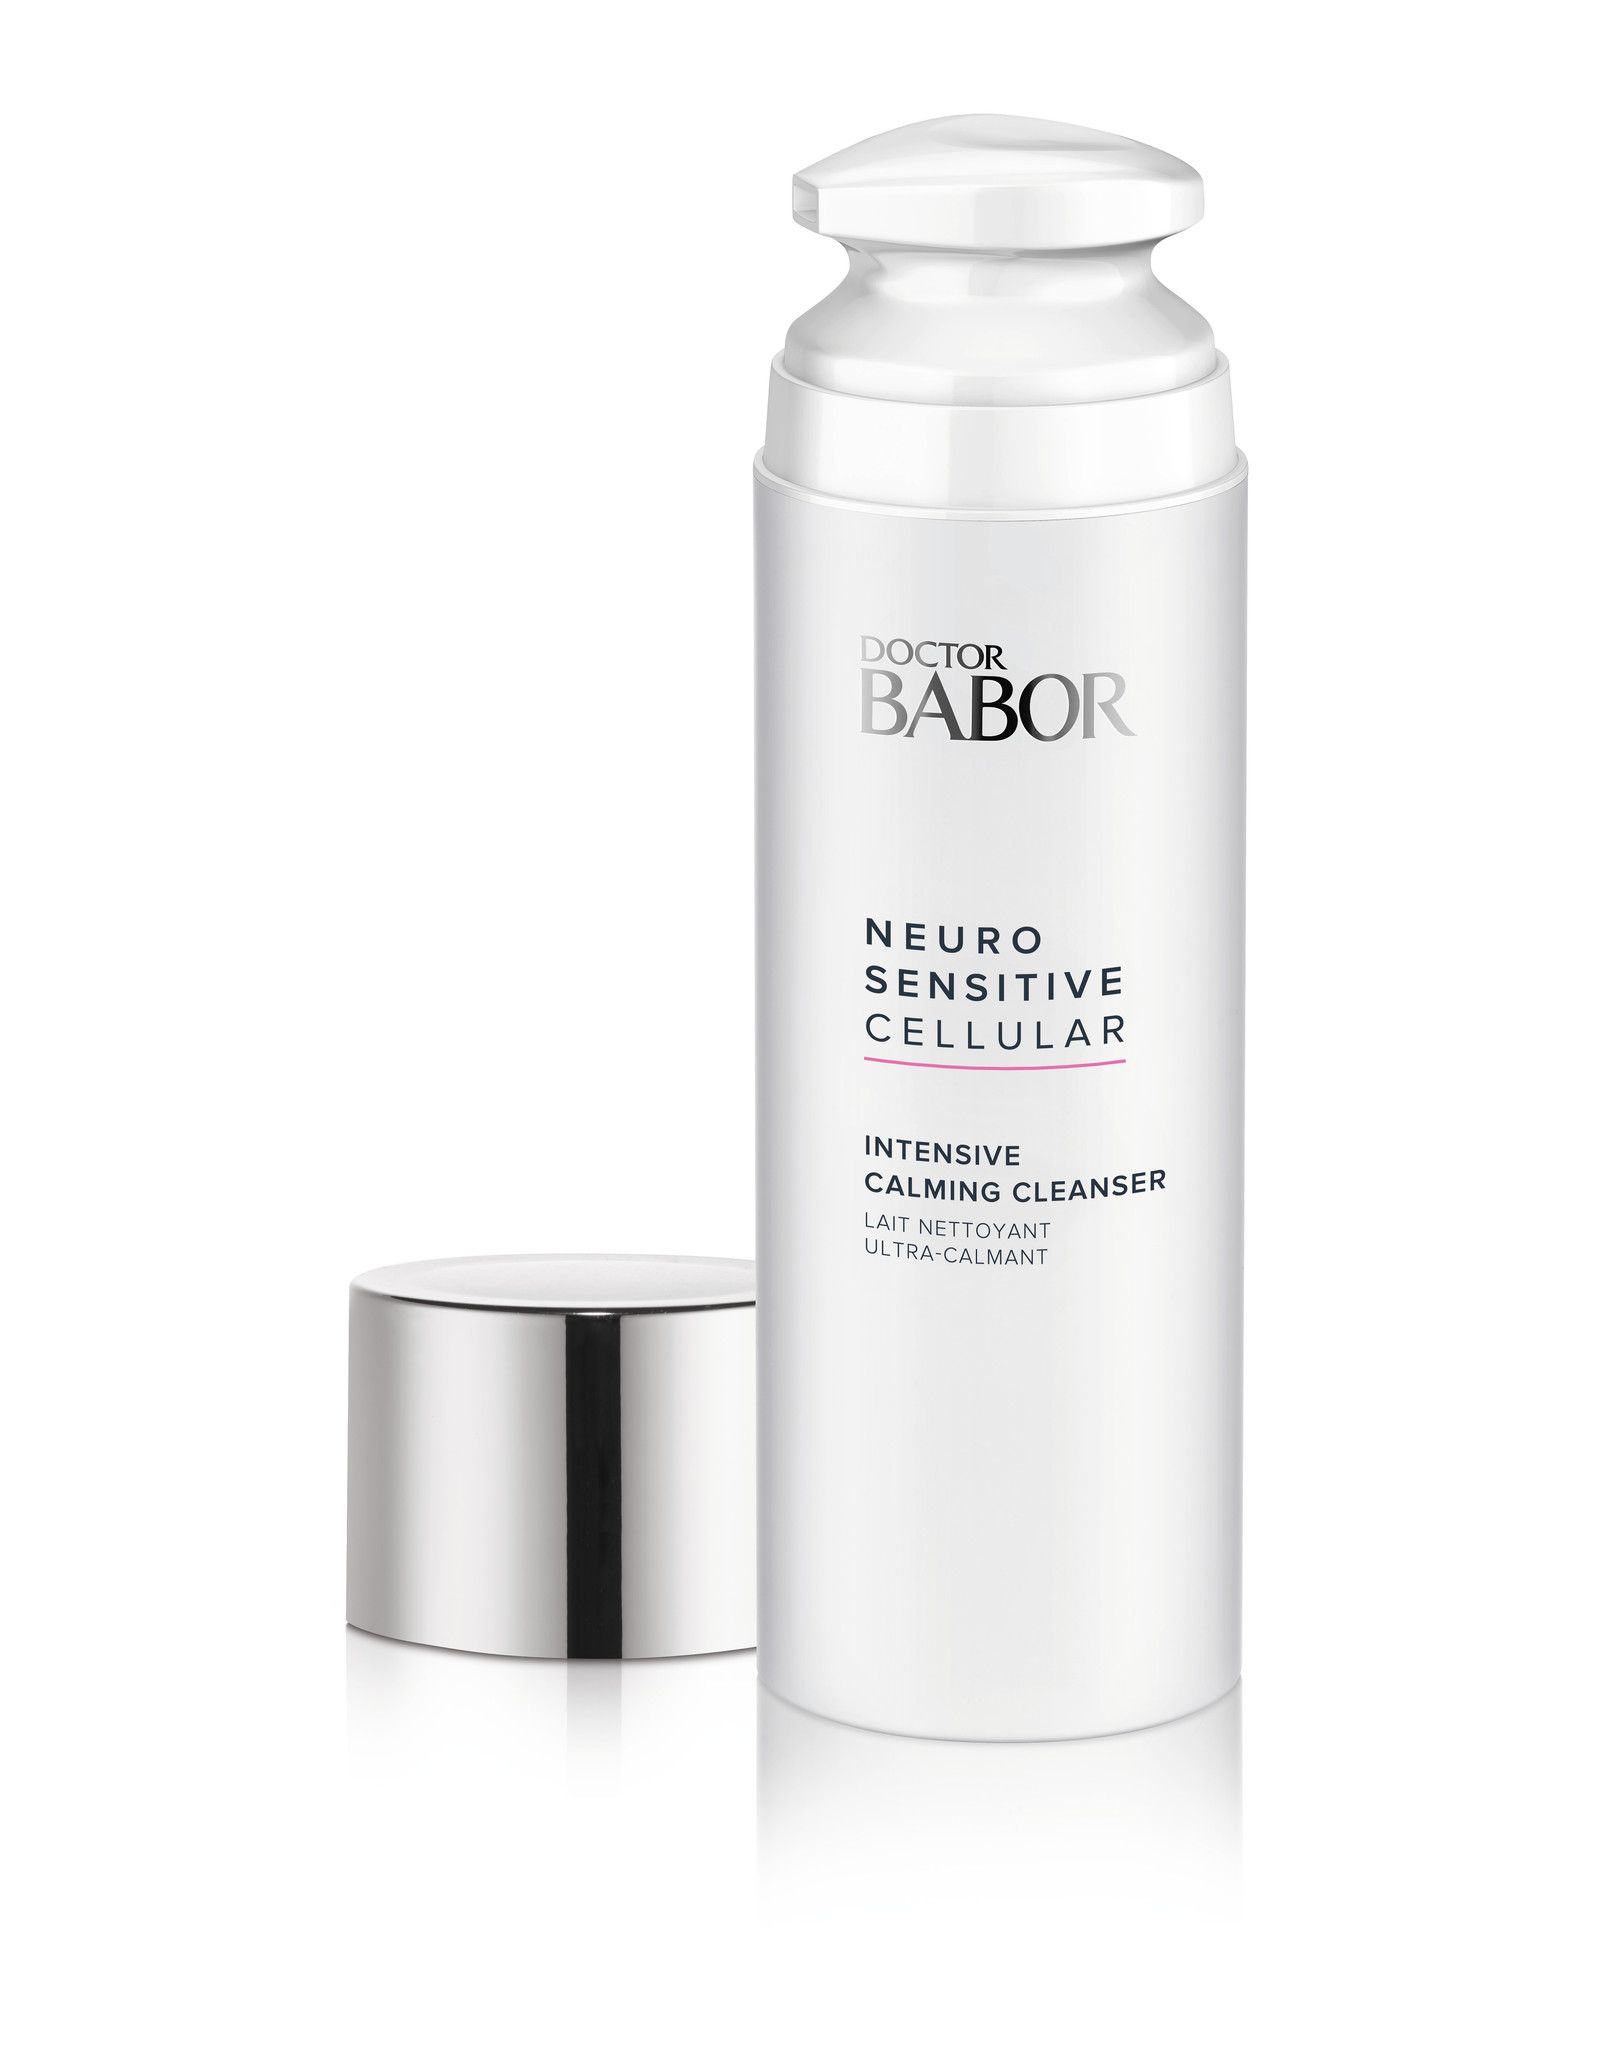 BABOR DOCTOR BABOR NEURO SENSITIVE INTENSIVE CALMING CLEANSER, 150 ML